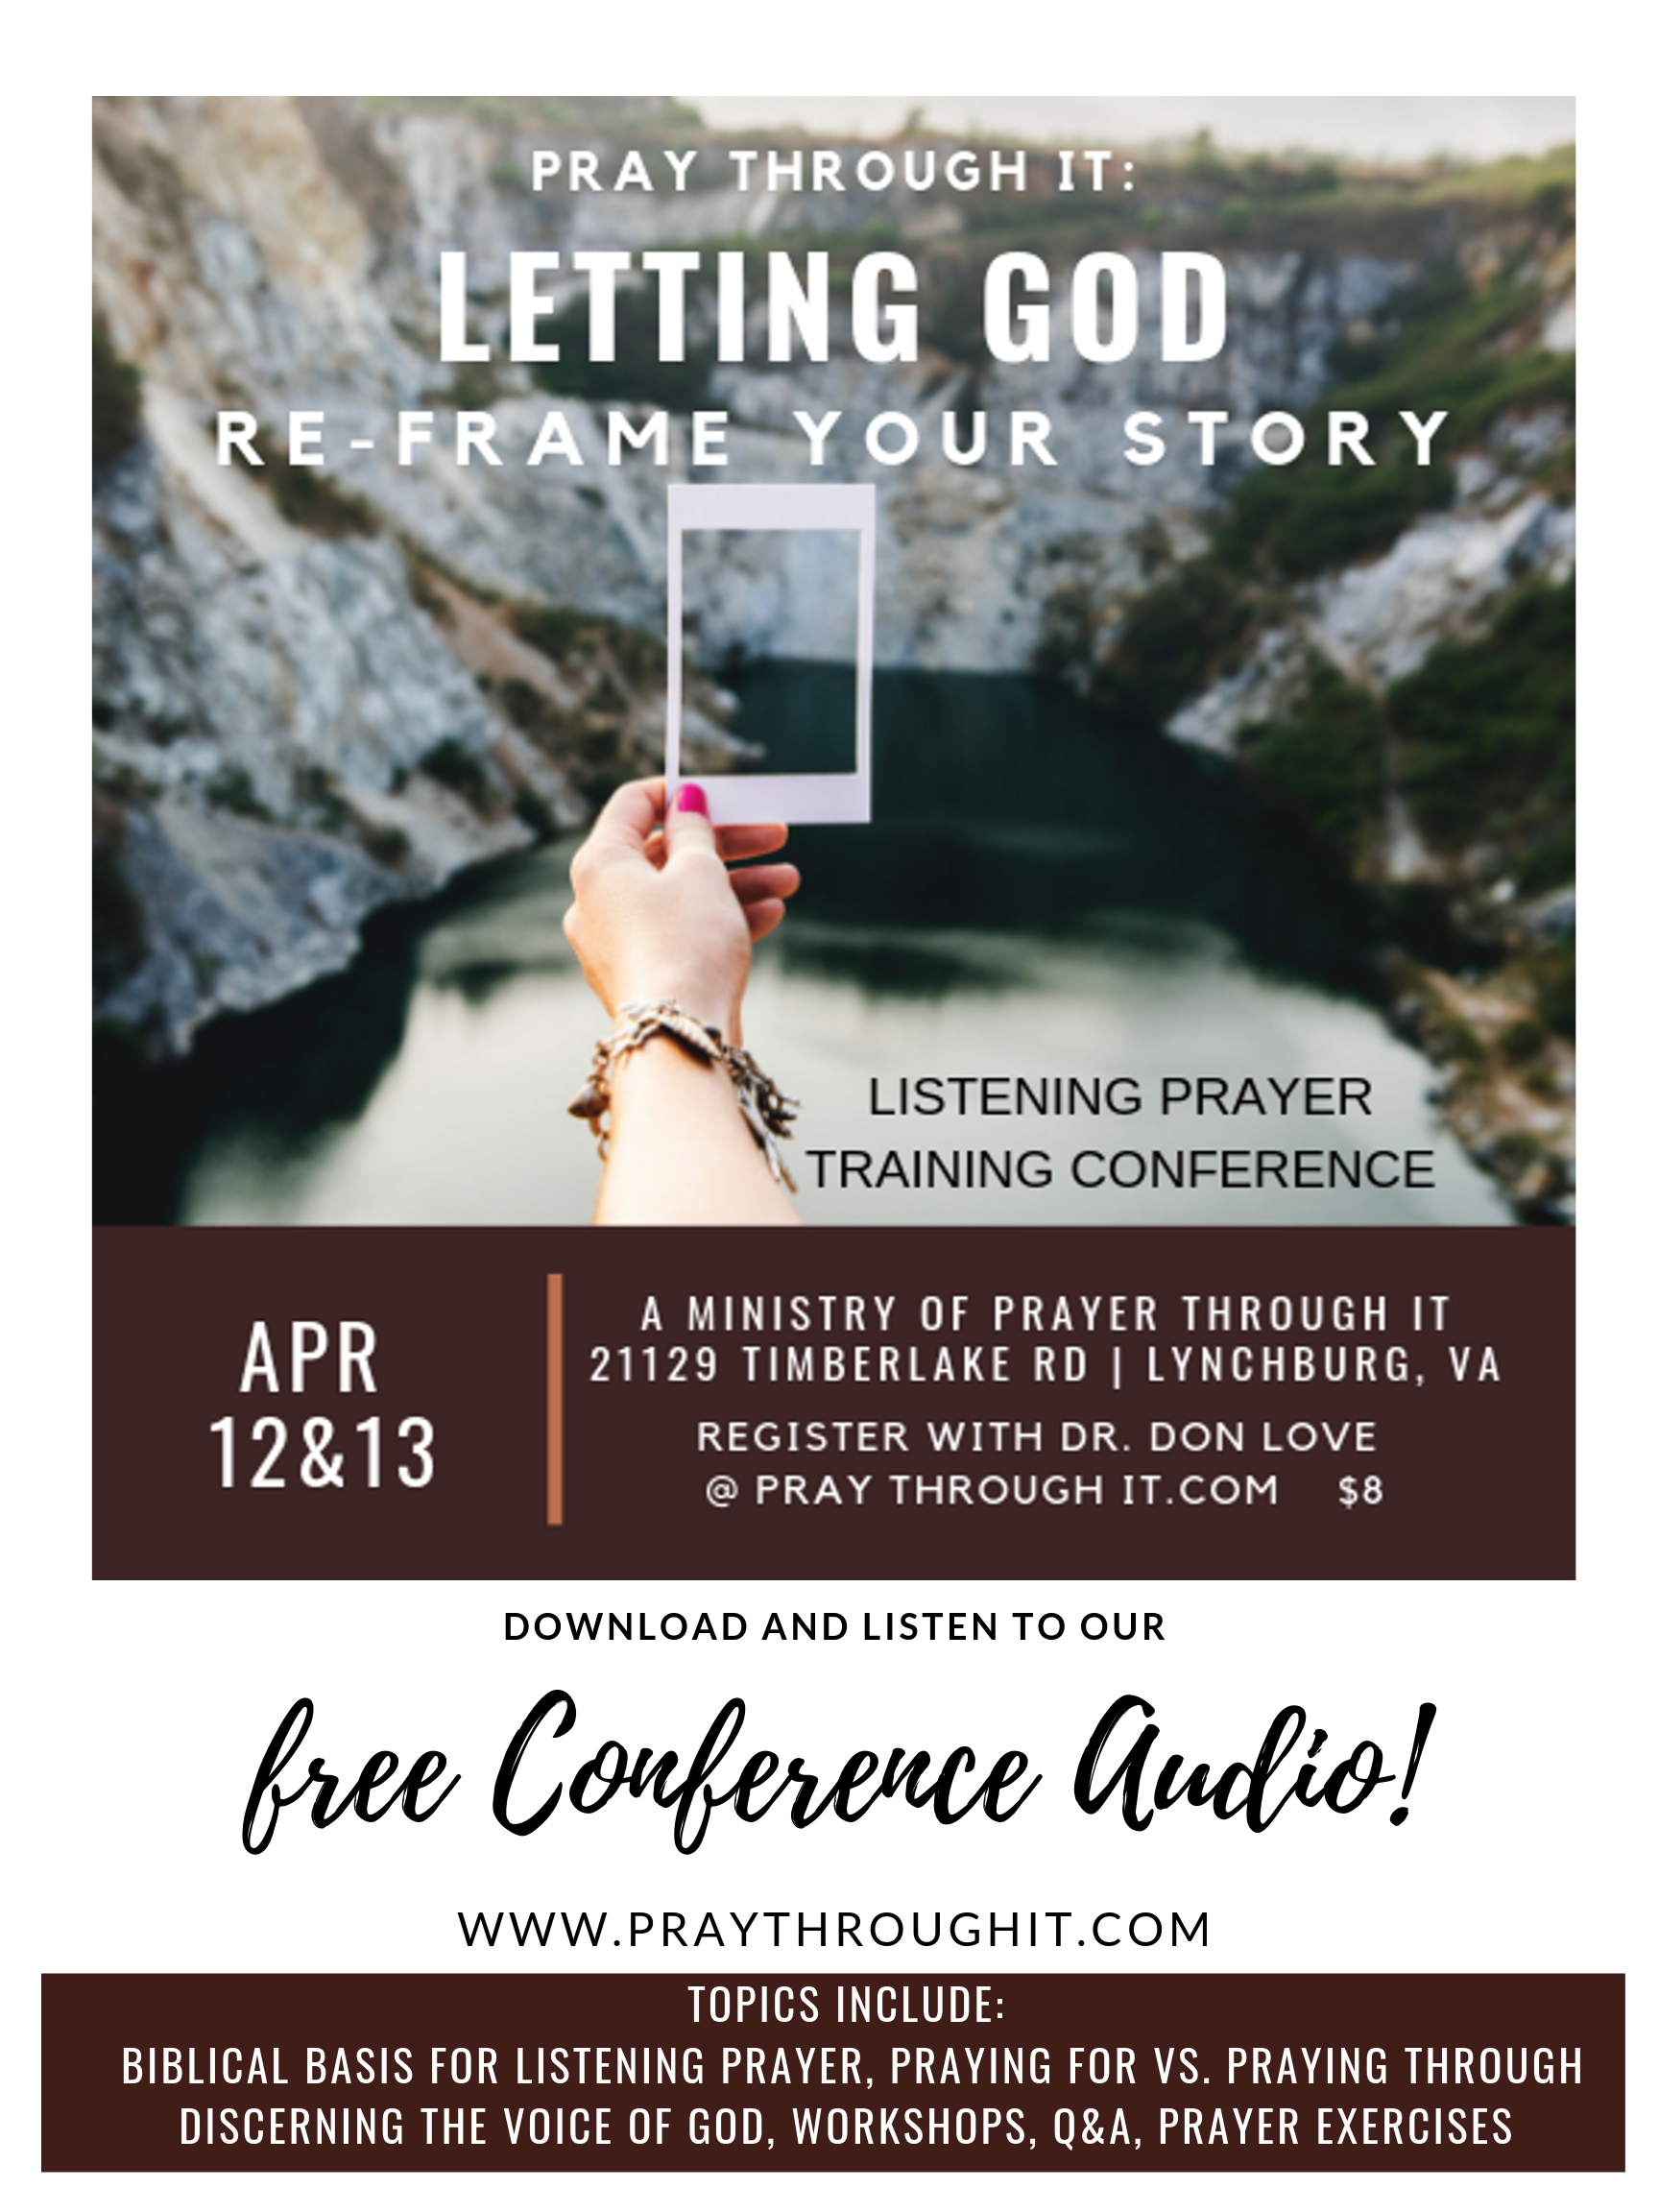 www.praythroughit.com #freeaudio #podcast #listeningprayer